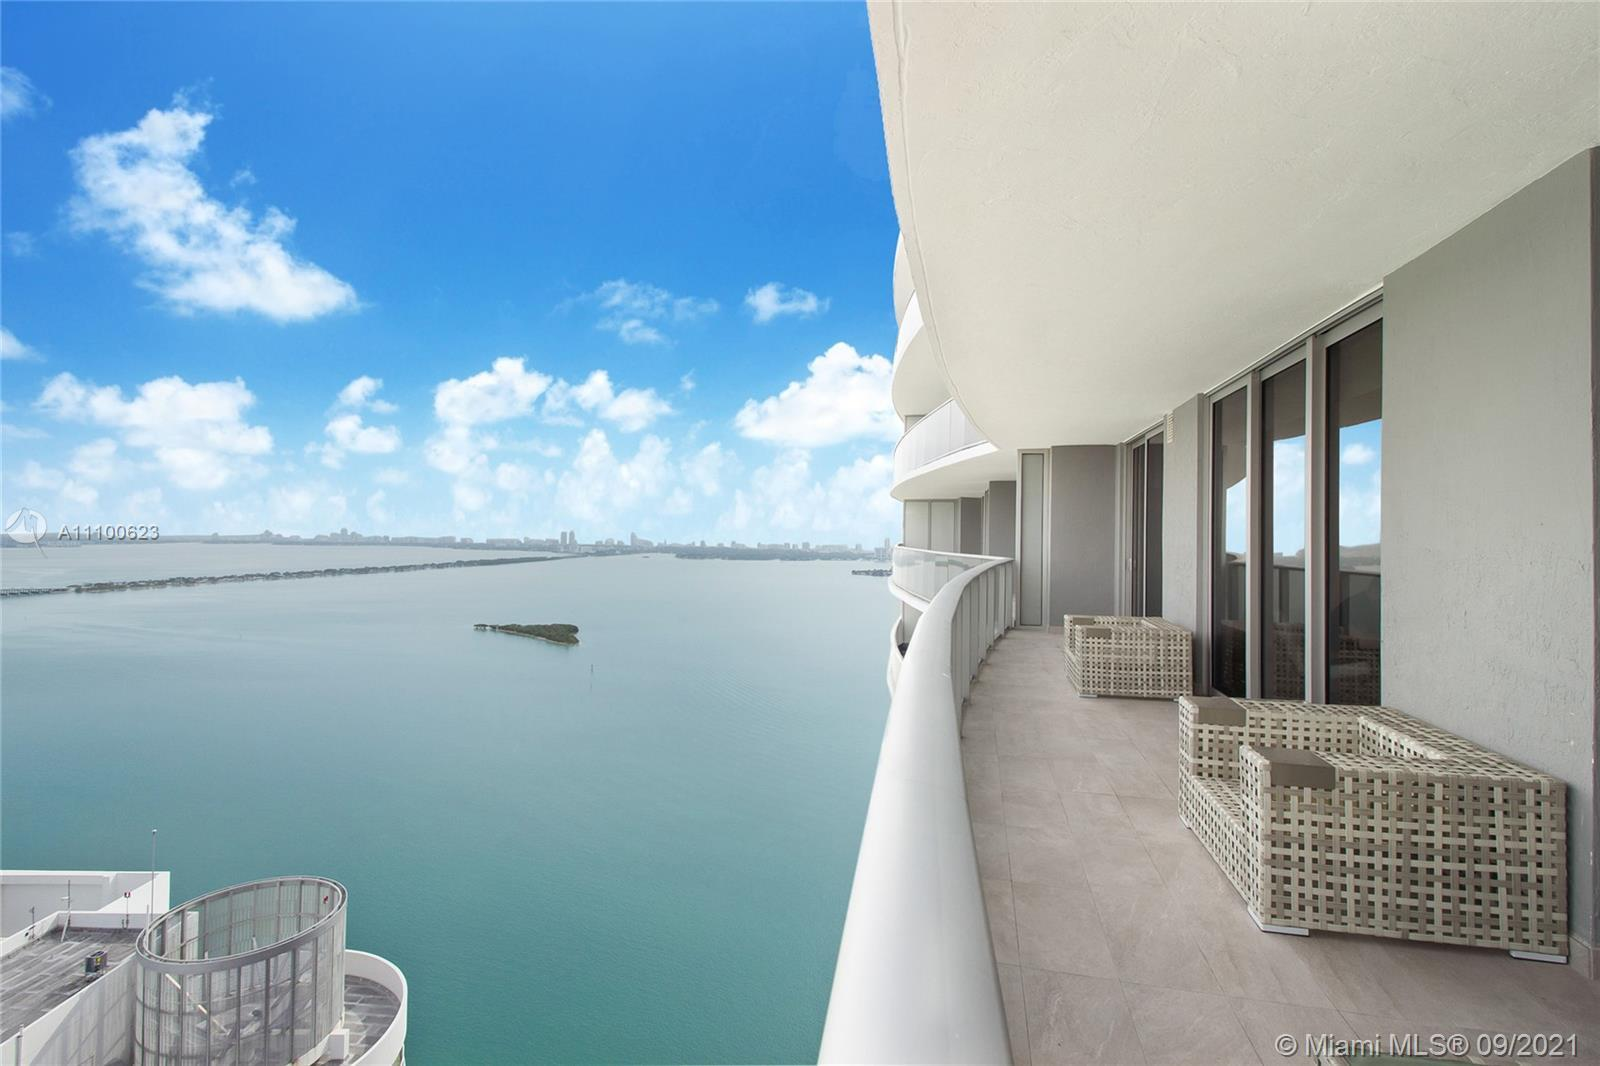 Amazing lower penthouse, located on the 50th floor. Beautifully furnished. Two oversized bedrooms, 2